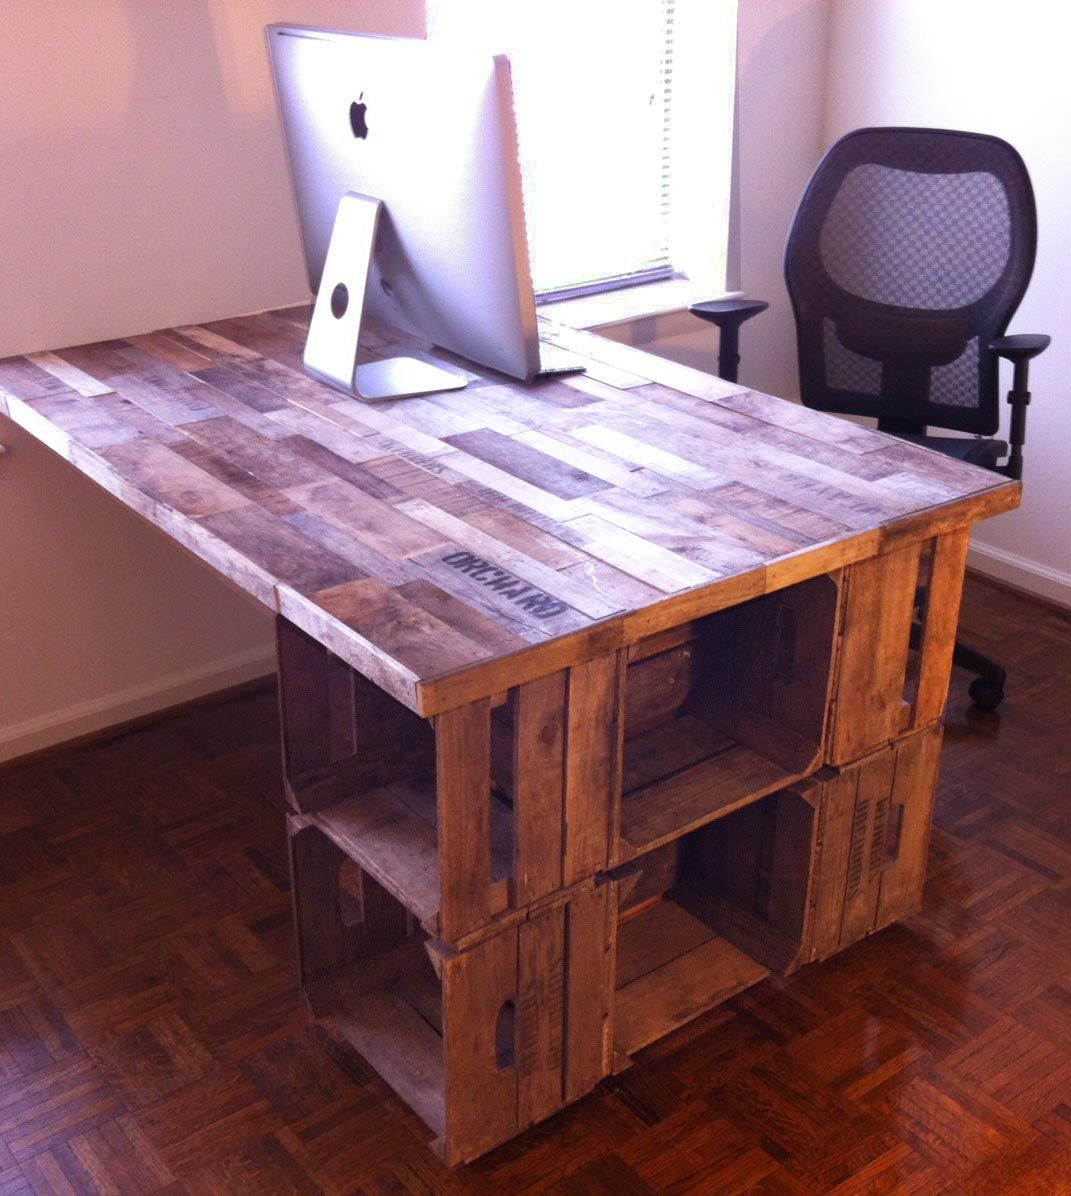 Reduce reuse repurpose a recycled apple crate desk weavers reduce reuse repurpose a recycled apple crate desk weavers orchard geotapseo Choice Image